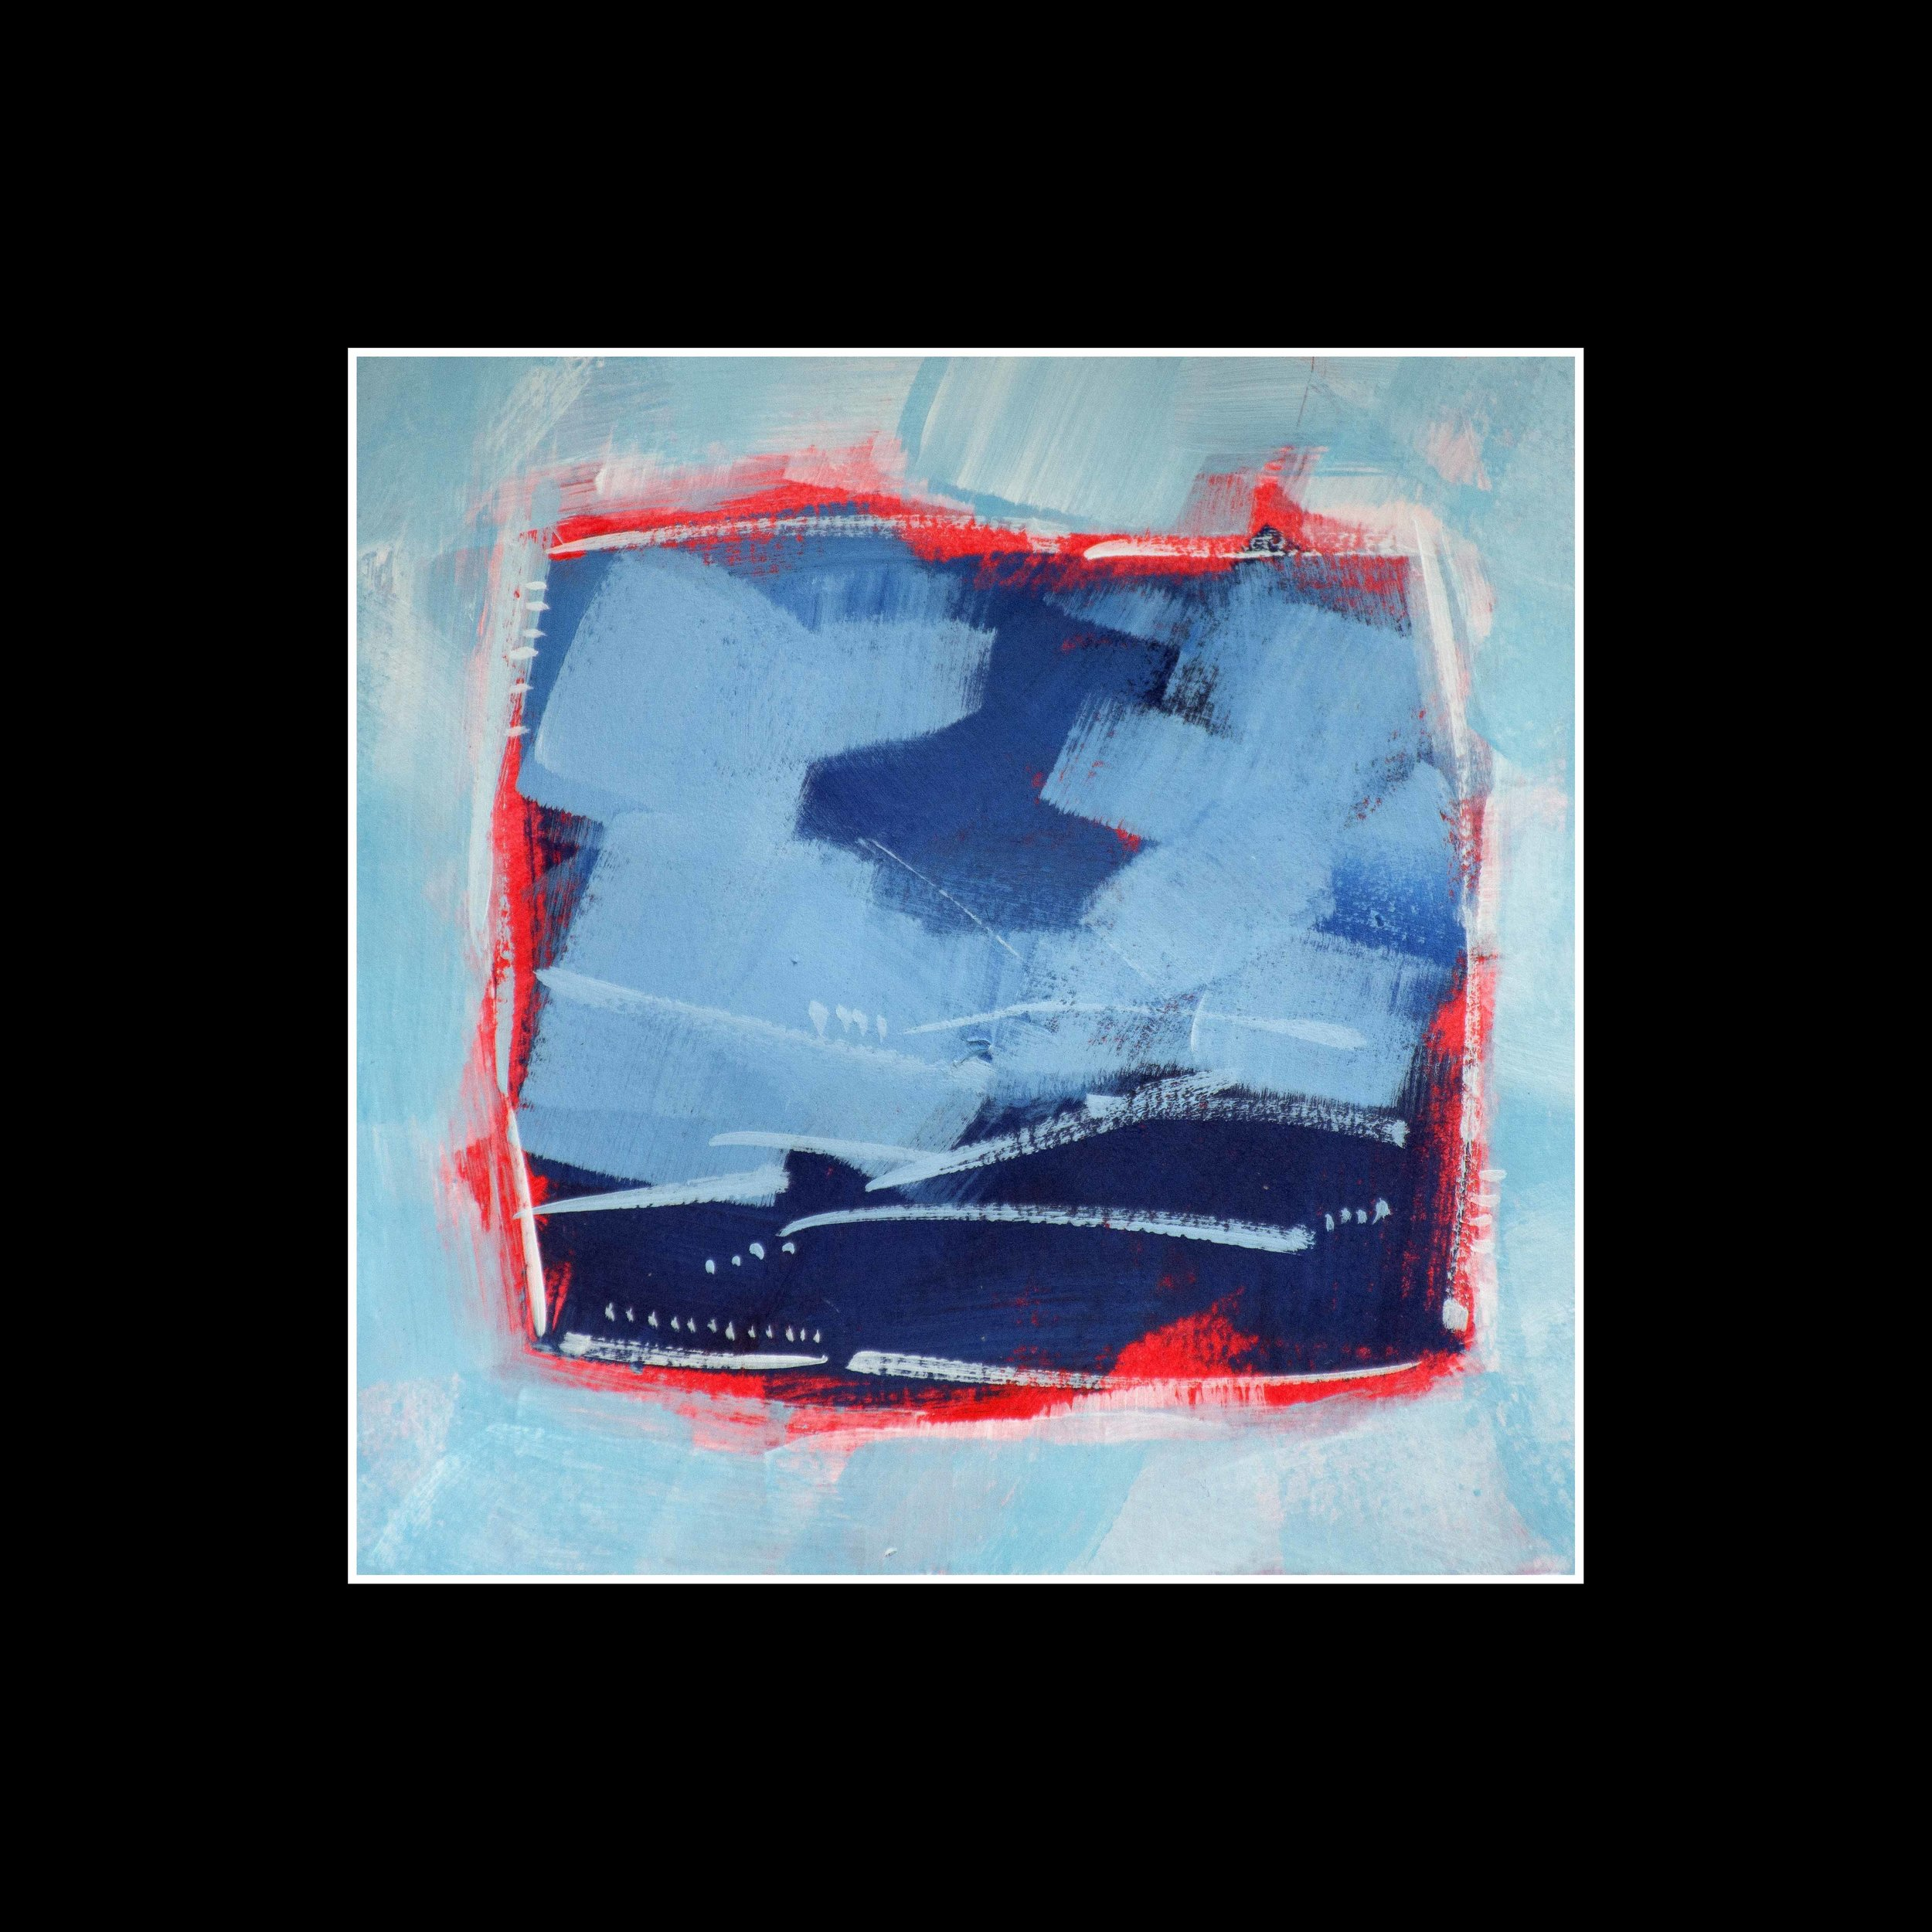 RWS004_Landscape in blue #4_SF_BlackMatte.jpg